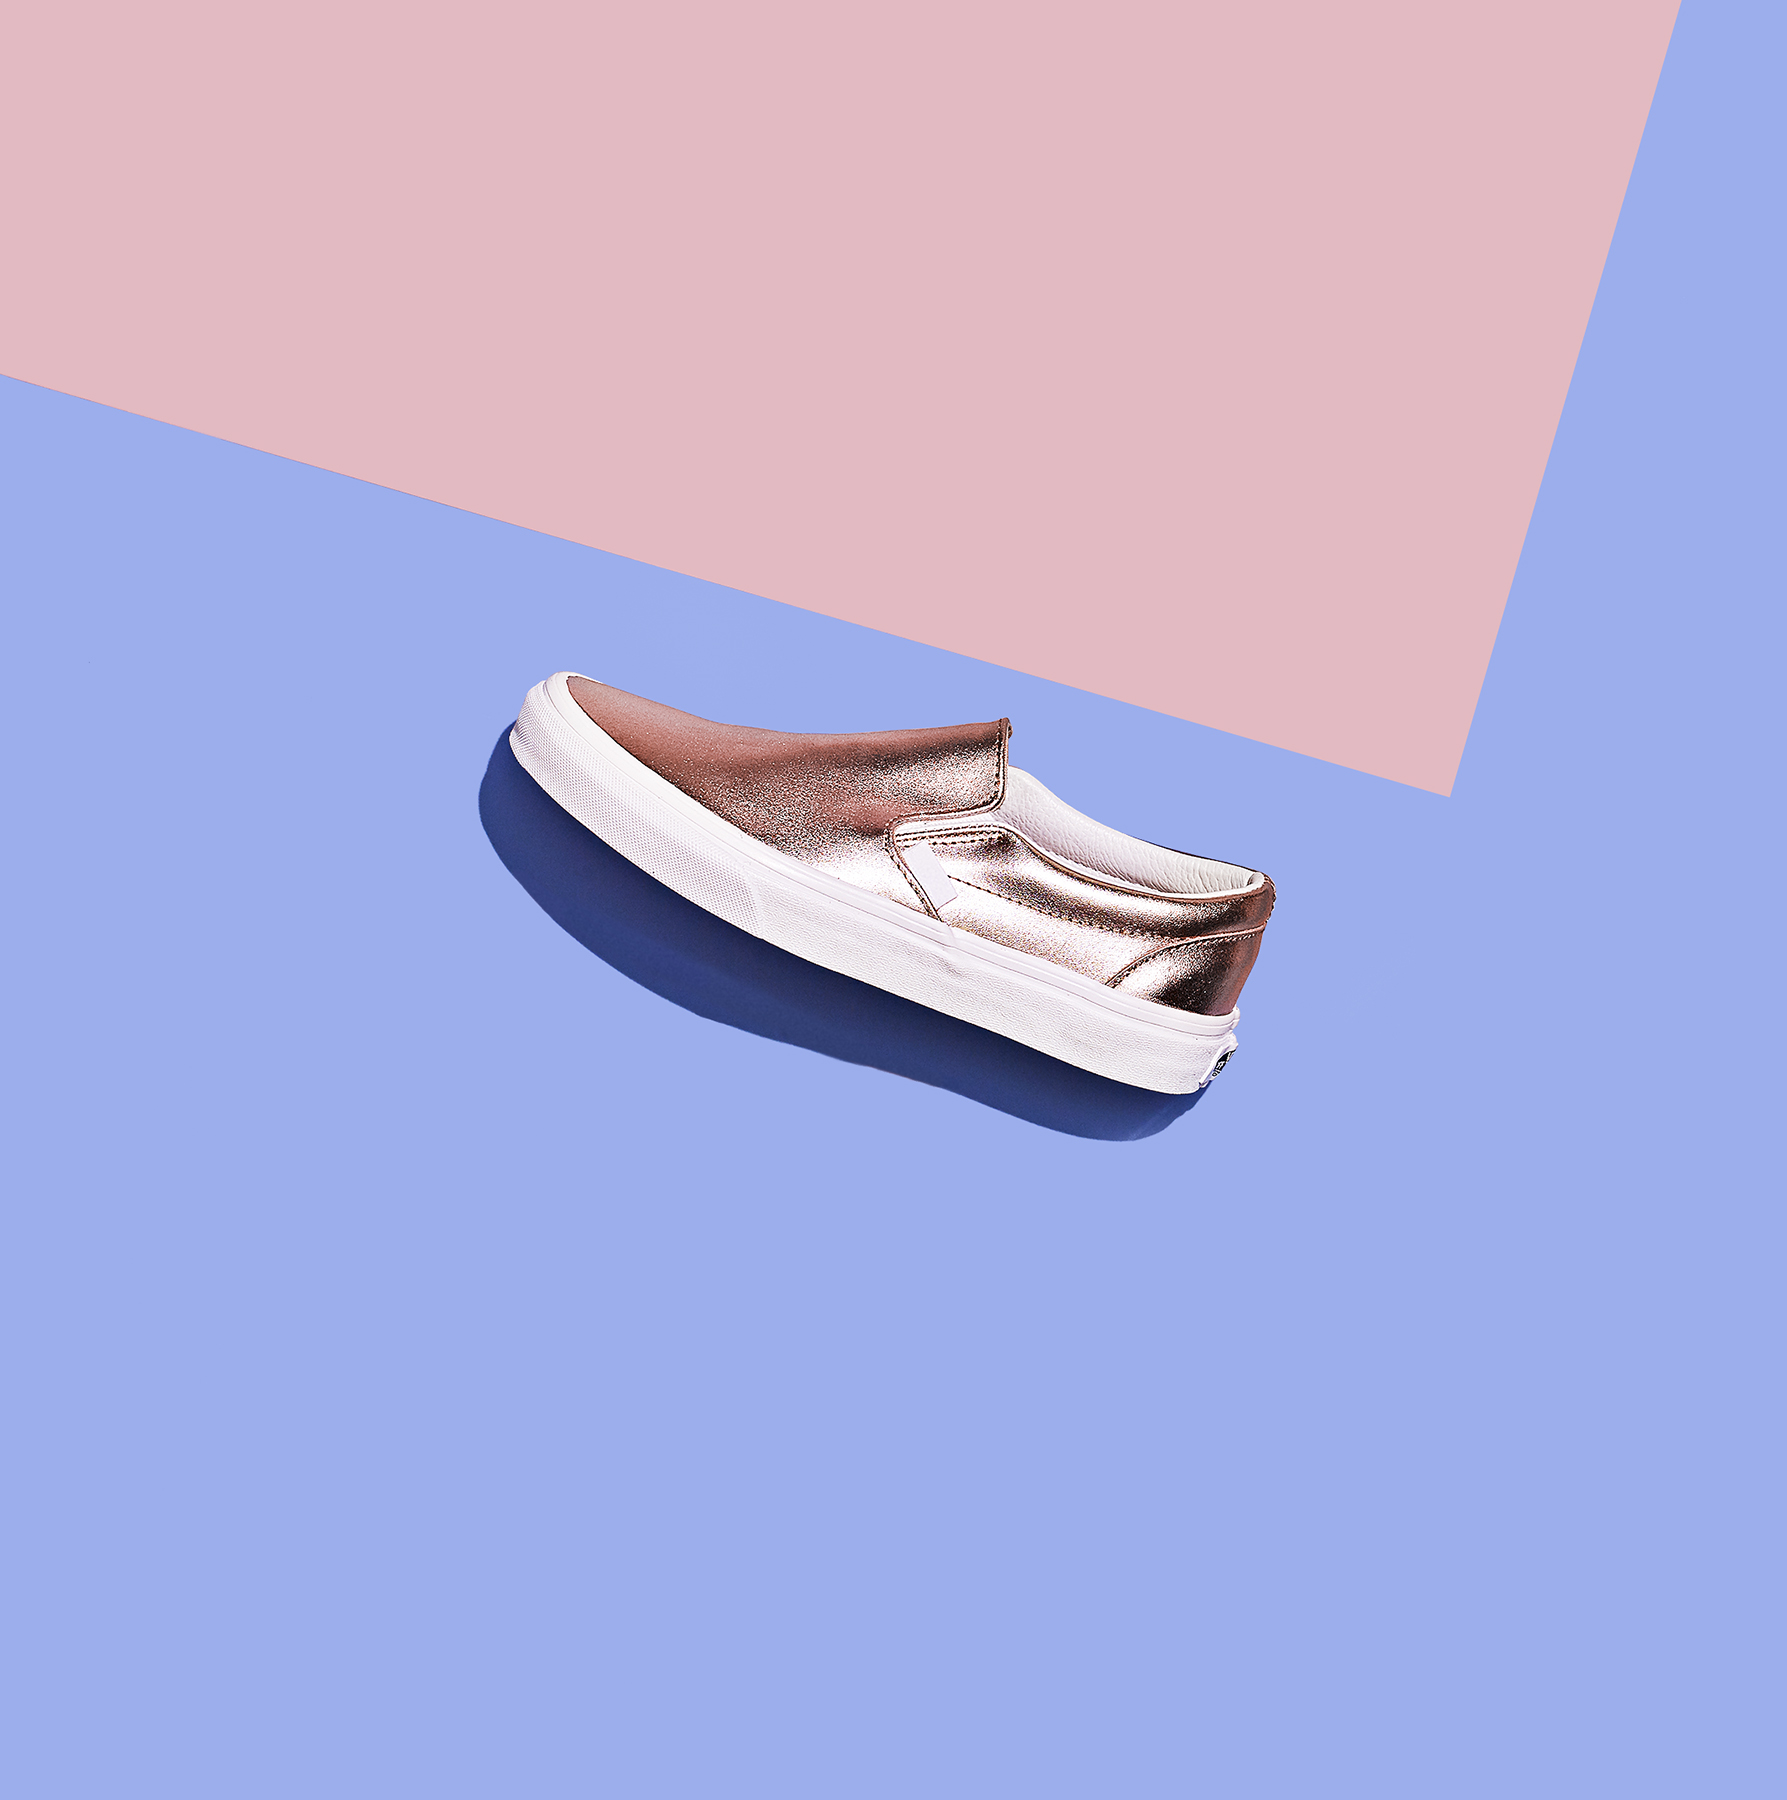 48485f6f28 4 Adorable Summer Shoes You Can Walk In All Day